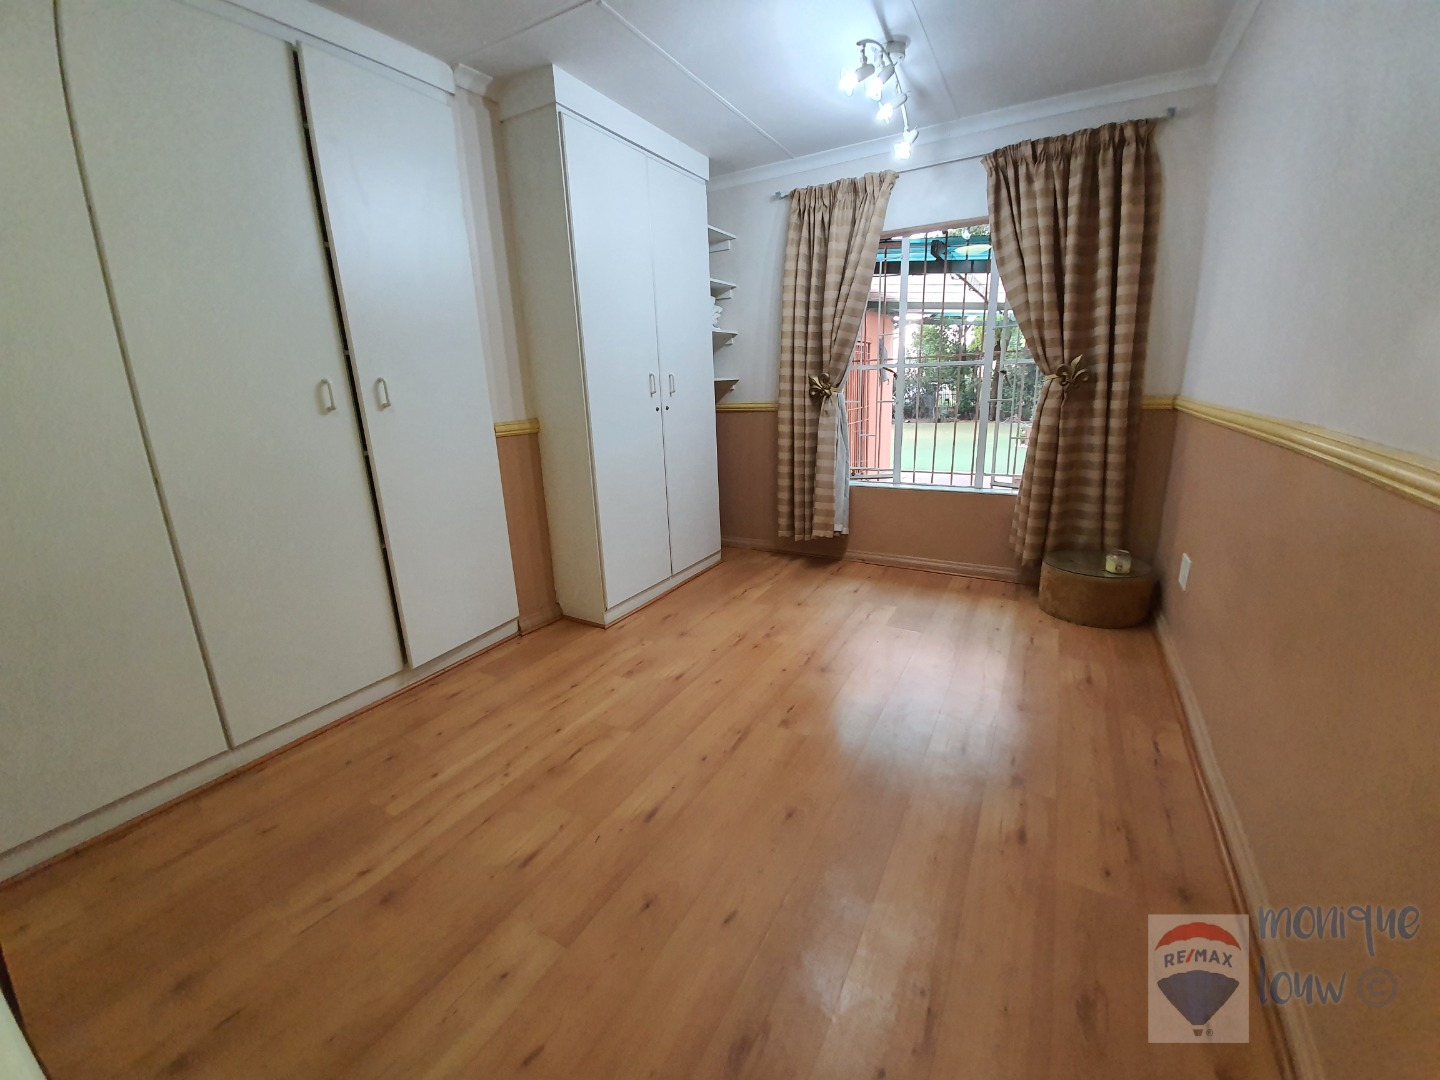 4 Bedroom House For Sale in Albertsdal